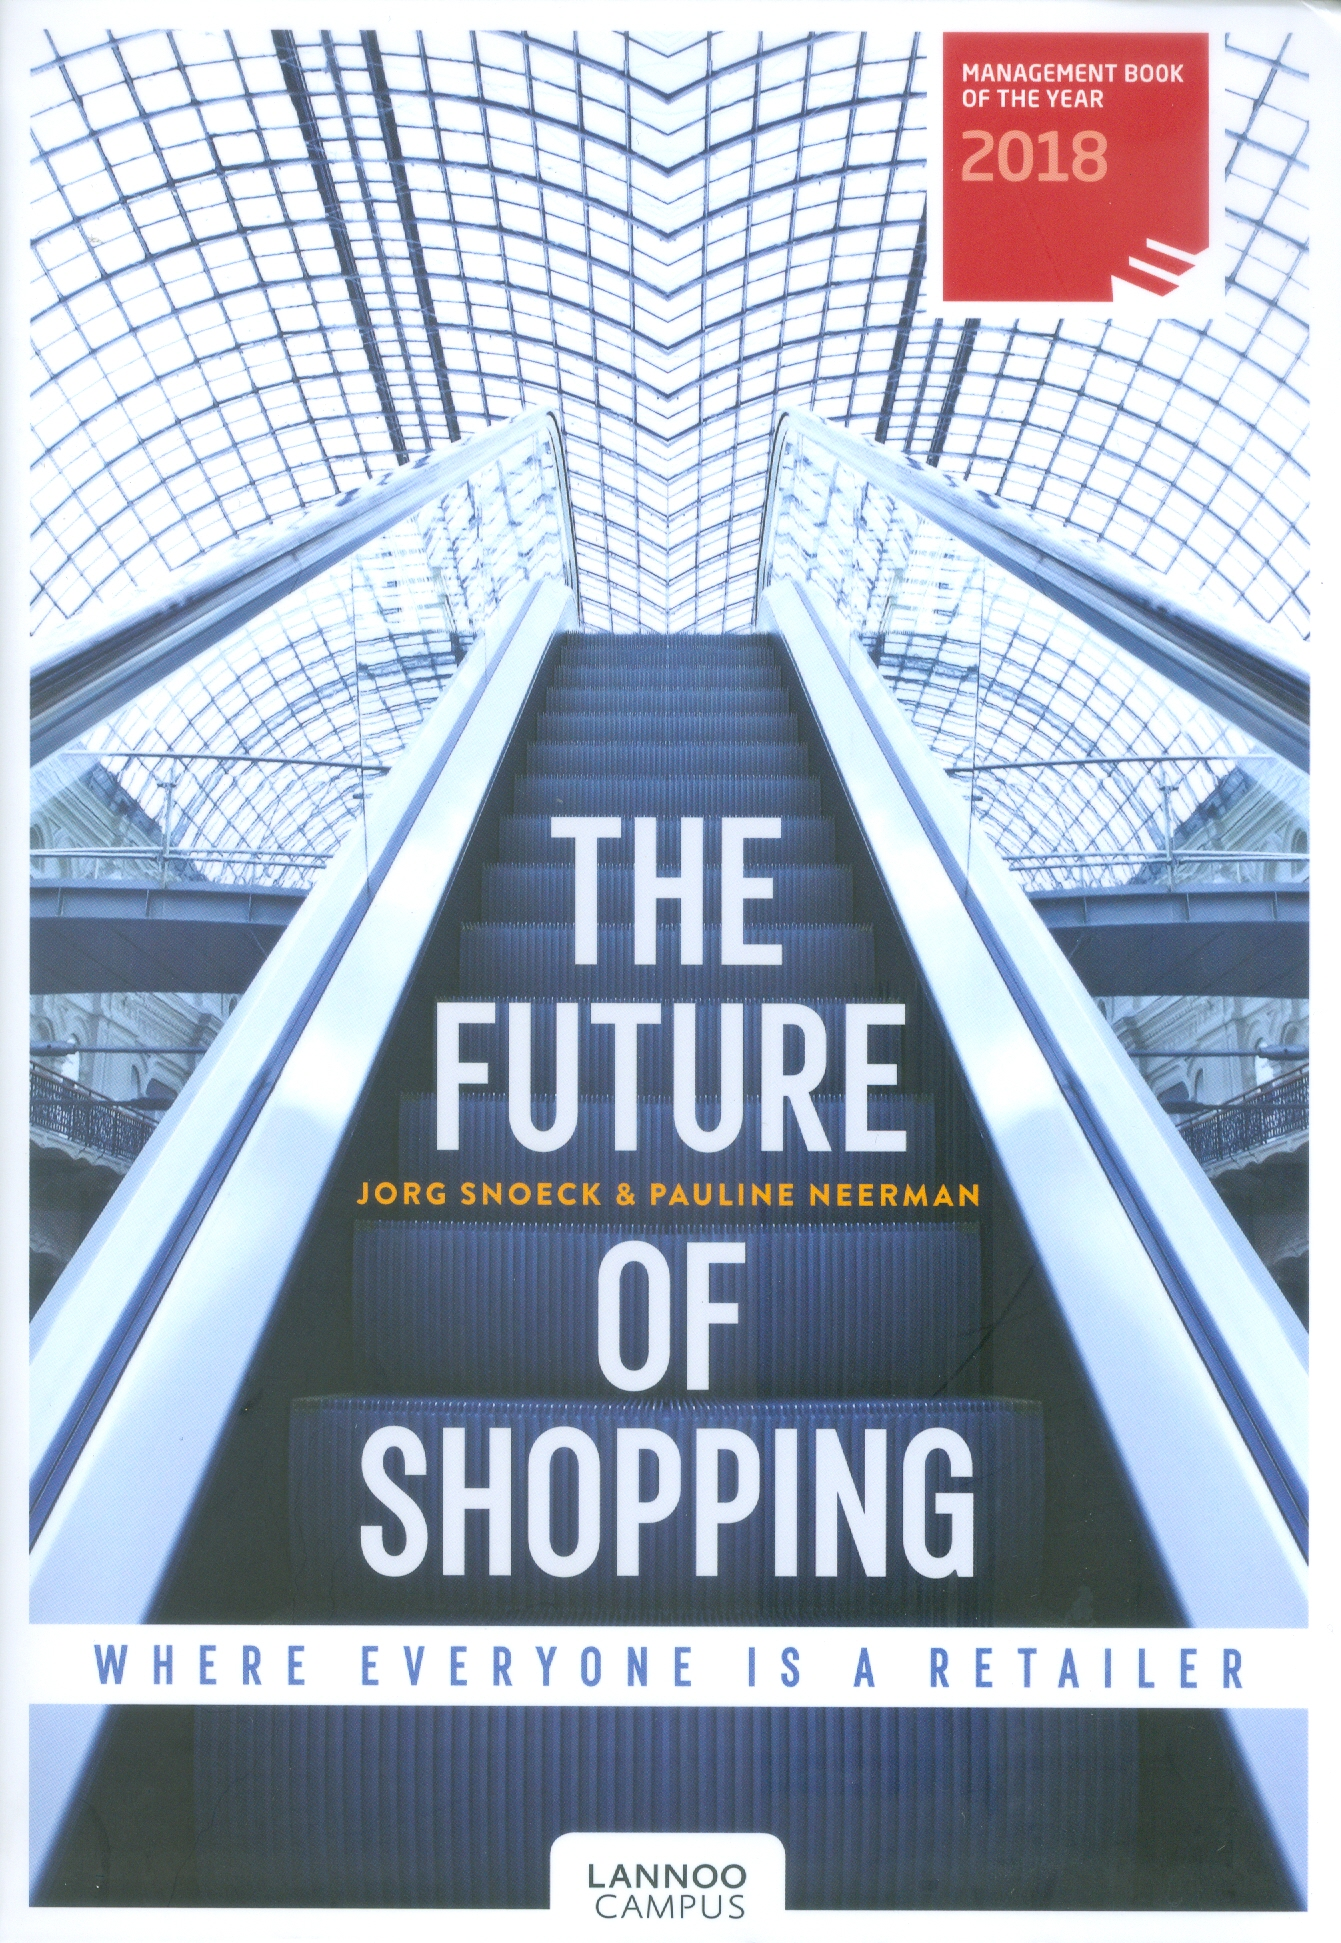 the future of shopping0001.jpg